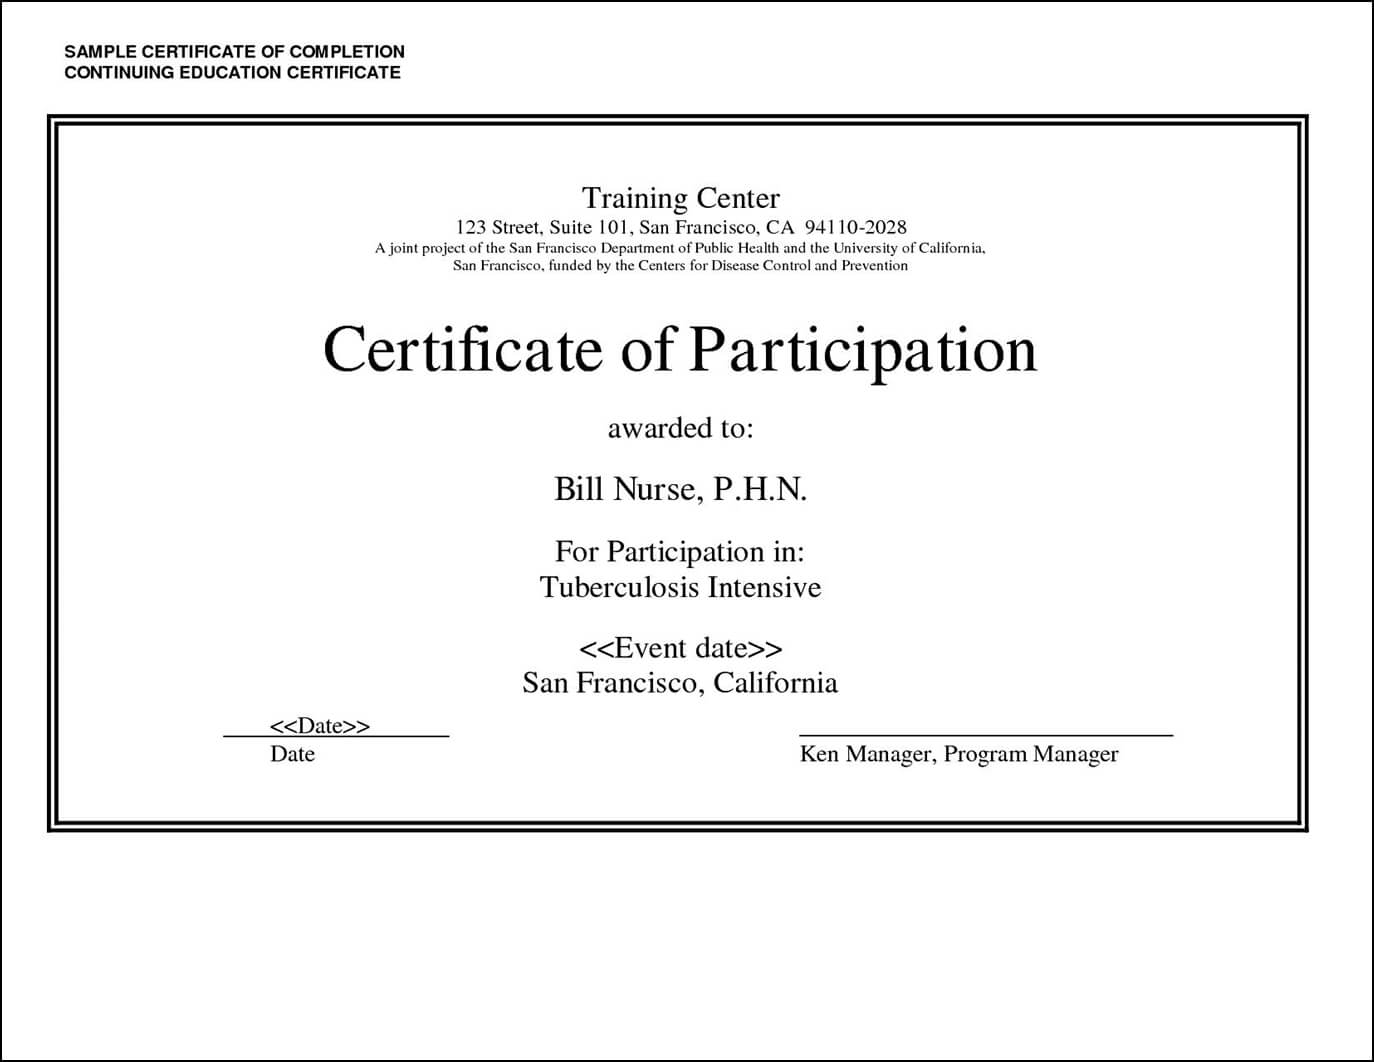 27 Images Of Adult Education Certificate Template | Masorler pertaining to Ceu Certificate Template